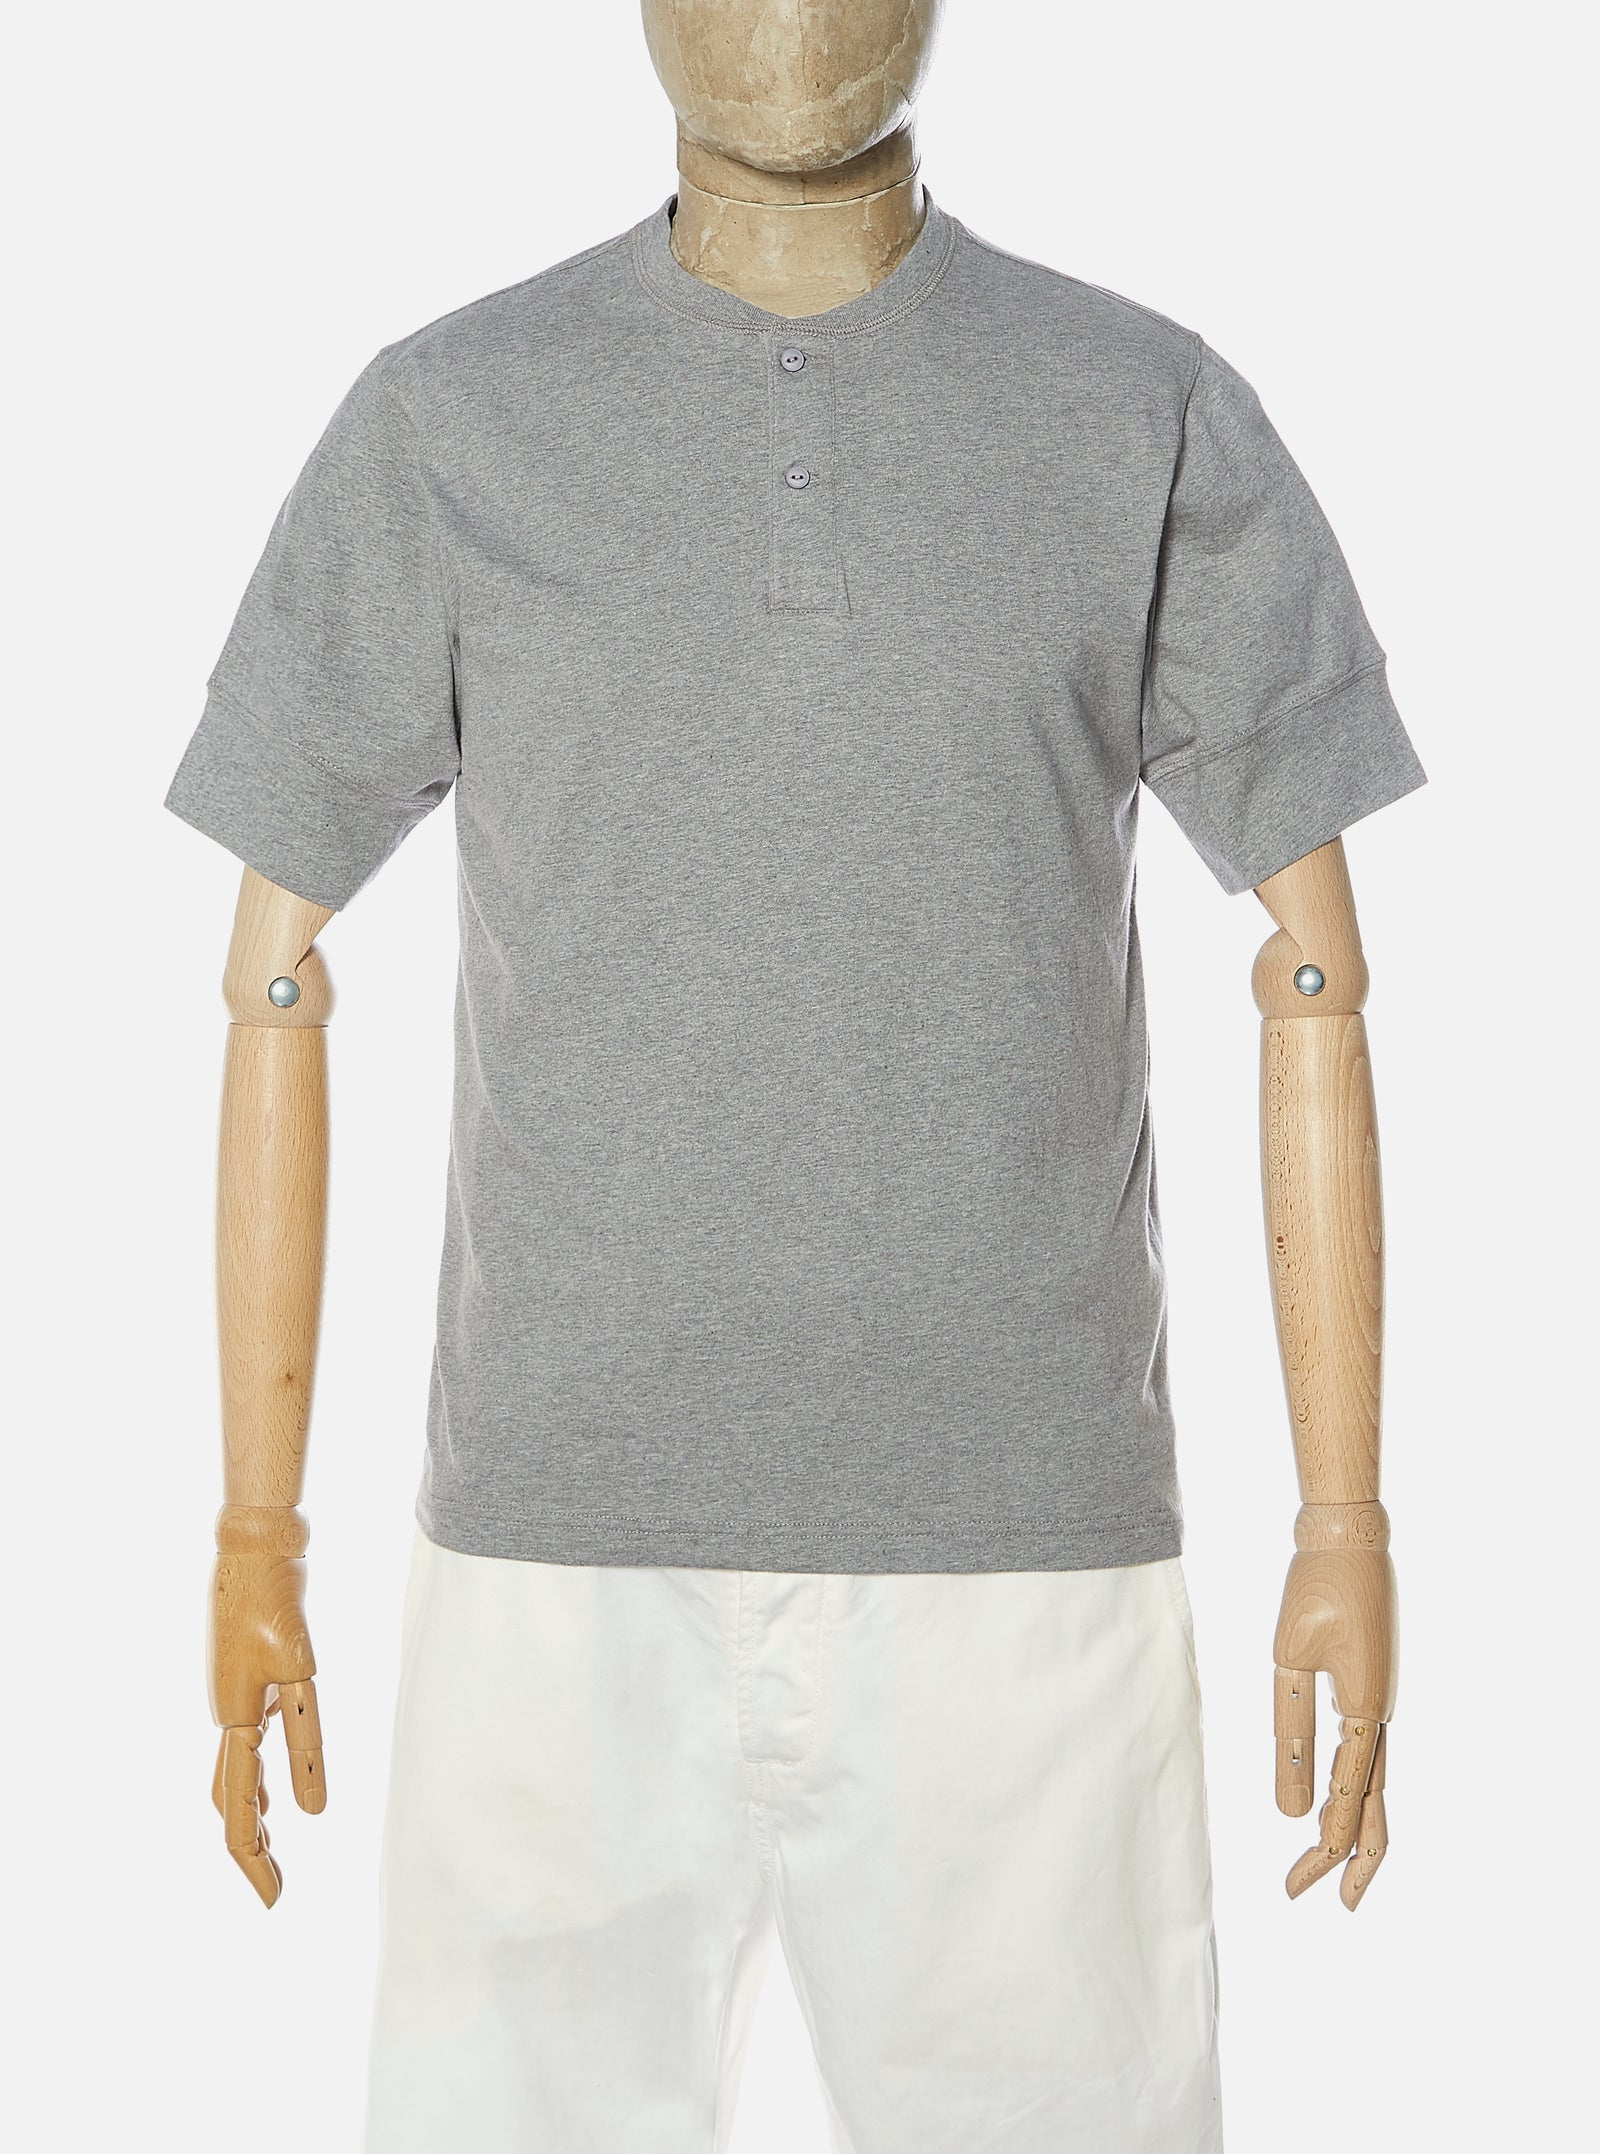 Universal Works S/S Eaton Shirt in Grey Marl Single Jersey